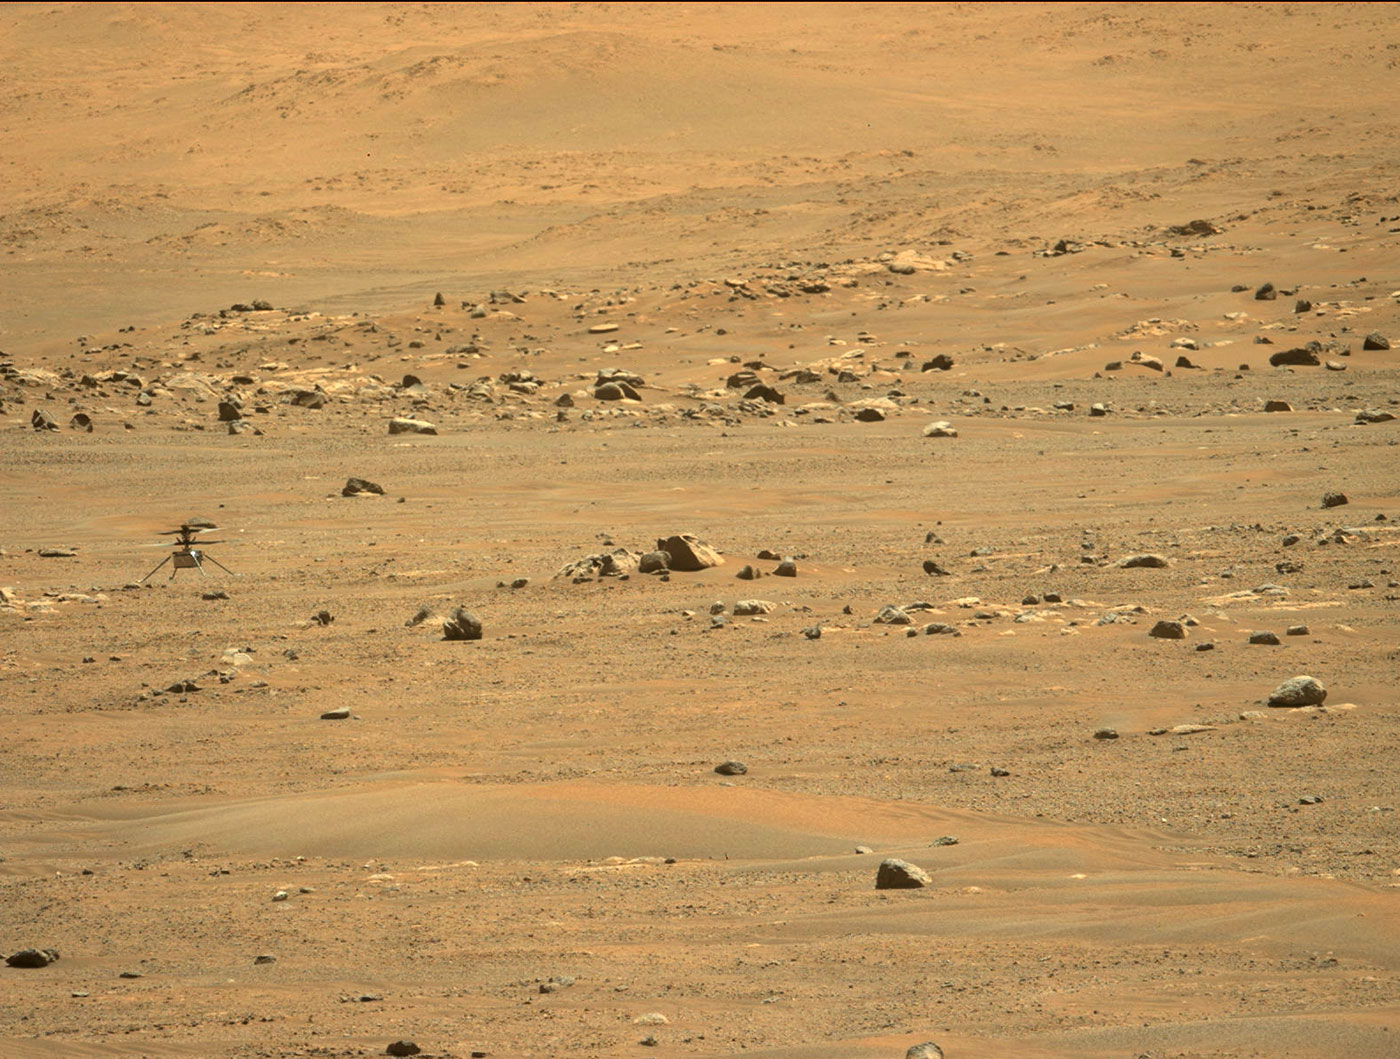 Ingenuity as seen by the Perseverance rover's Mastcam-Z imager following the helicopter's fifth flight. Credit: NASA/JPL-Caltech